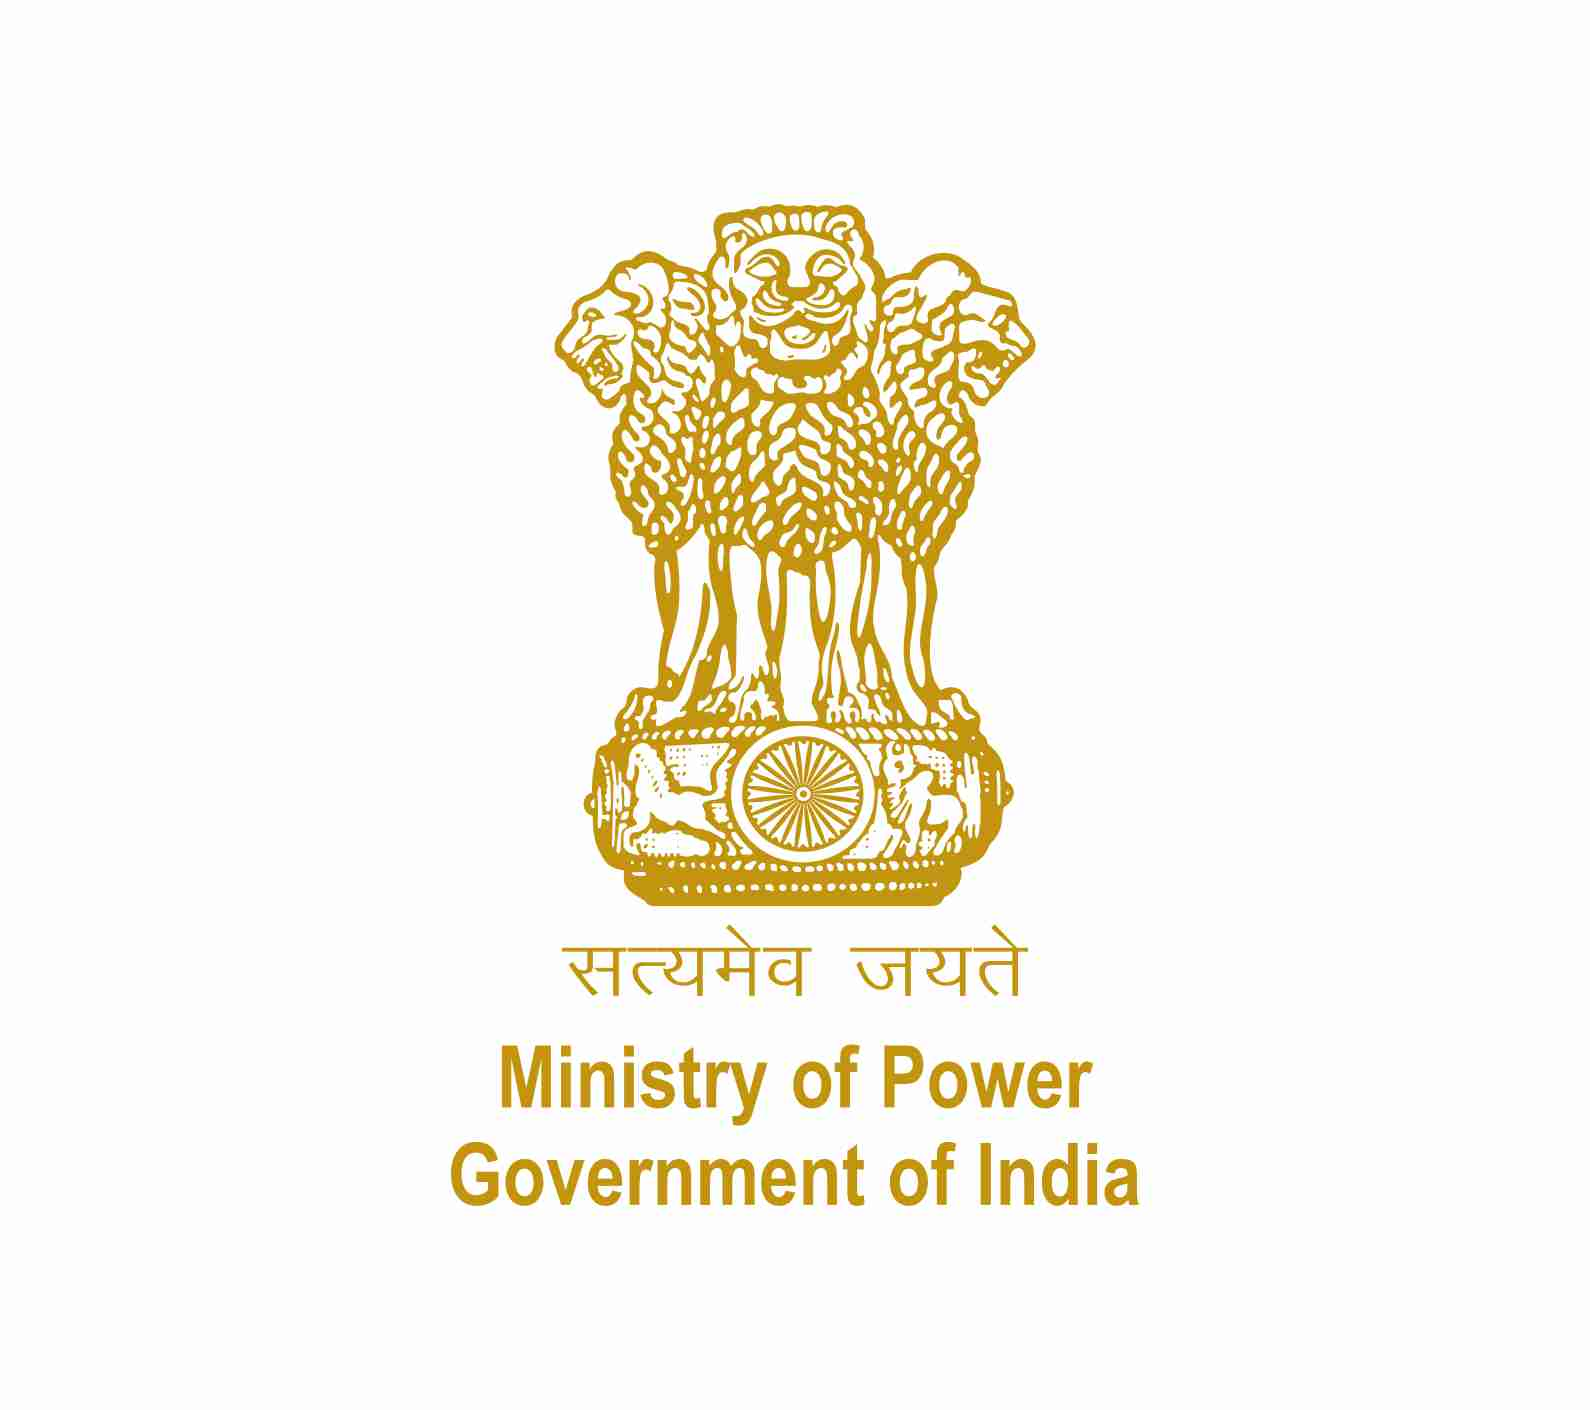 Appointment to the post of Chairman/ Member (Technical)/ Member (Finance) in Damodar Valley Corporation (DVC) on deputation basis through Search-cumSelection Committee (SCSC)-reg.